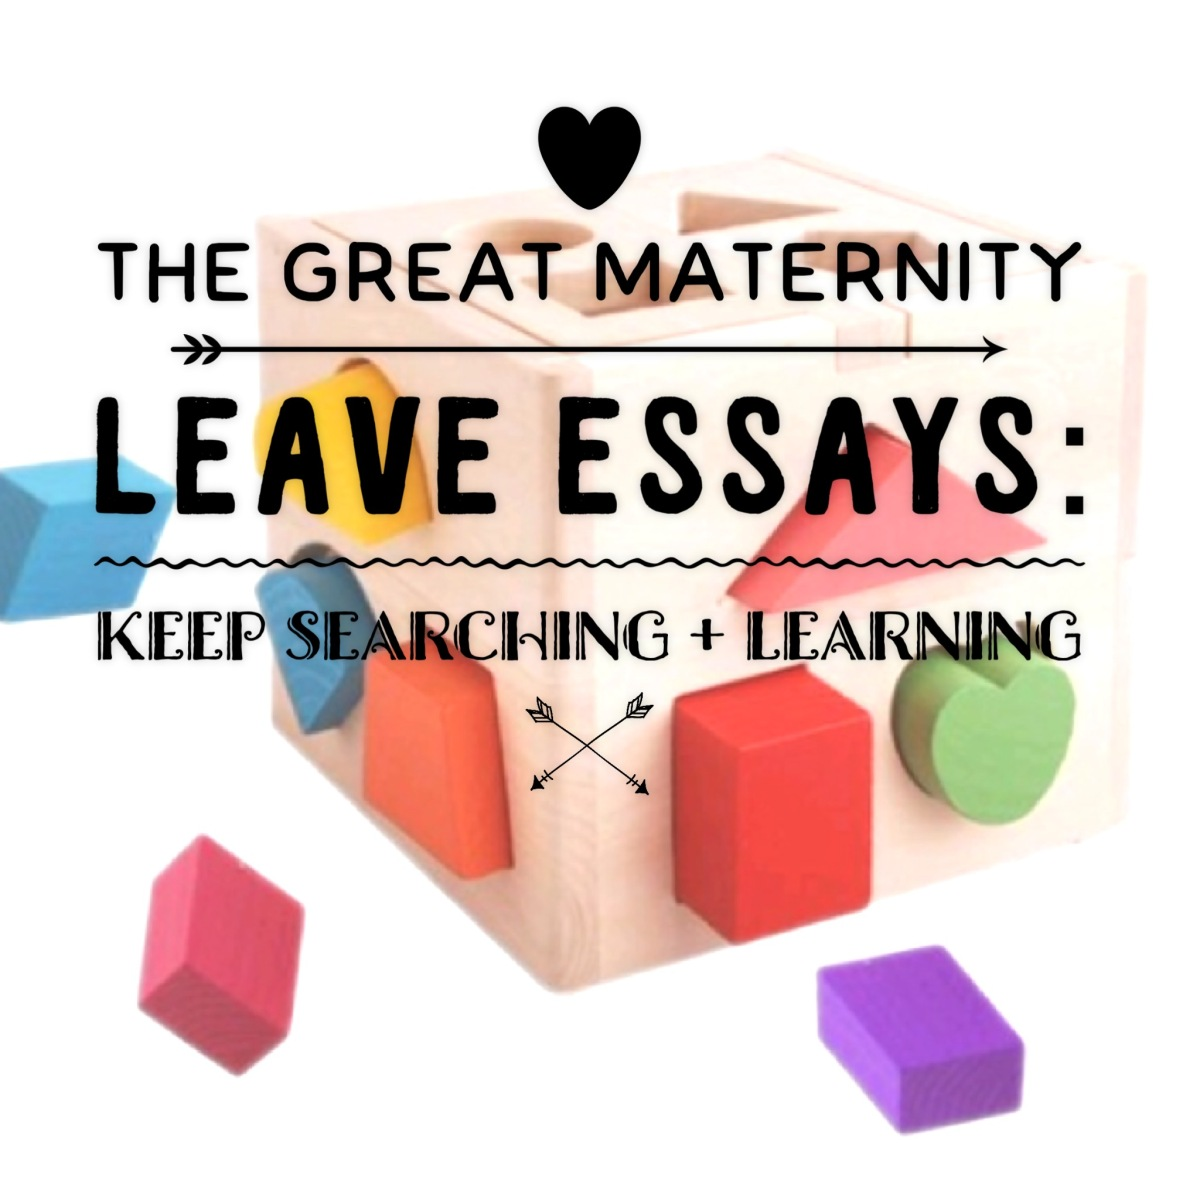 The Great Maternity Leave Essays:  How to Become Deeply Inspired and Motivated